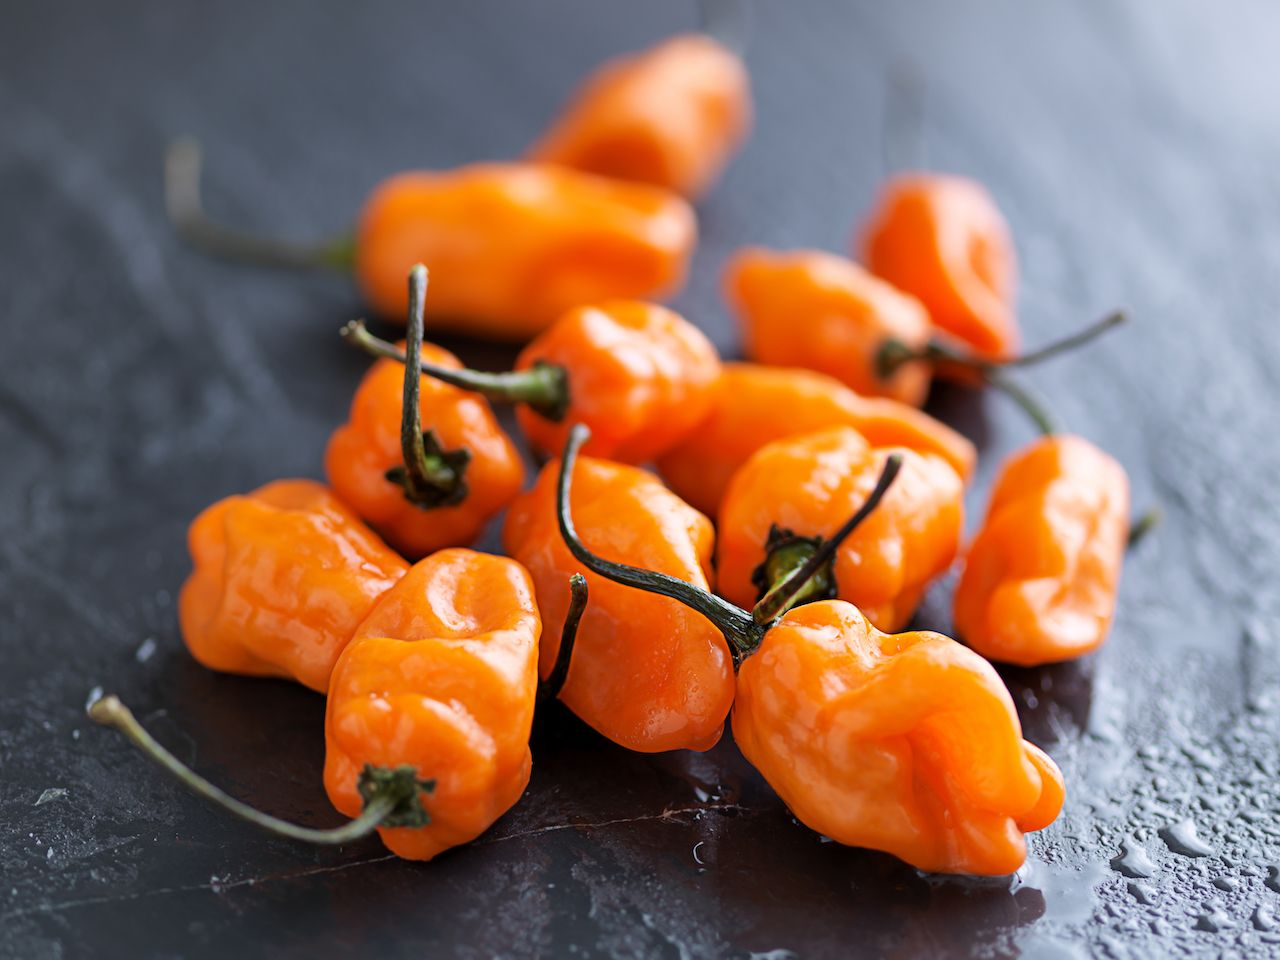 Orange habanero peppers